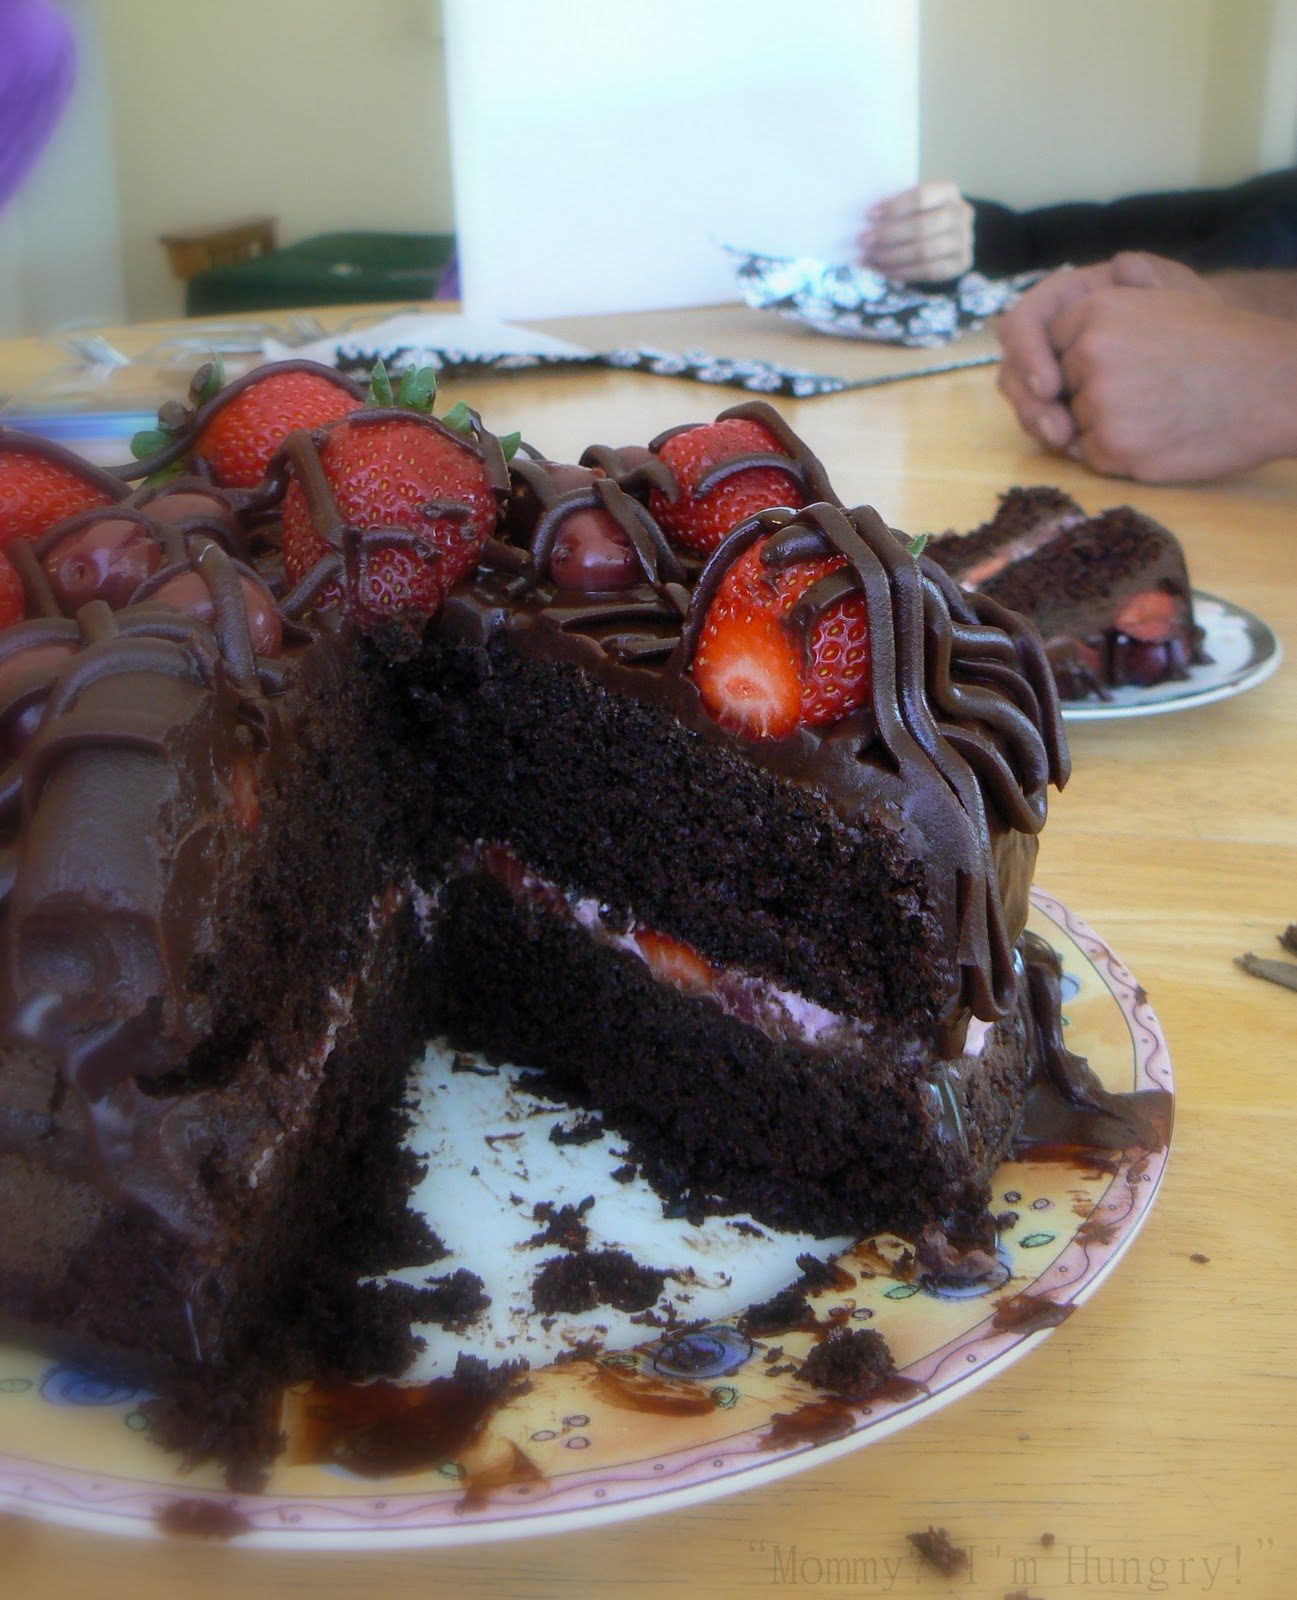 Cake With Chocolate Ganache And Strawberry Filling : MIH Recipe Blog: Chocolate Cherry Strawberry Ganache Cake